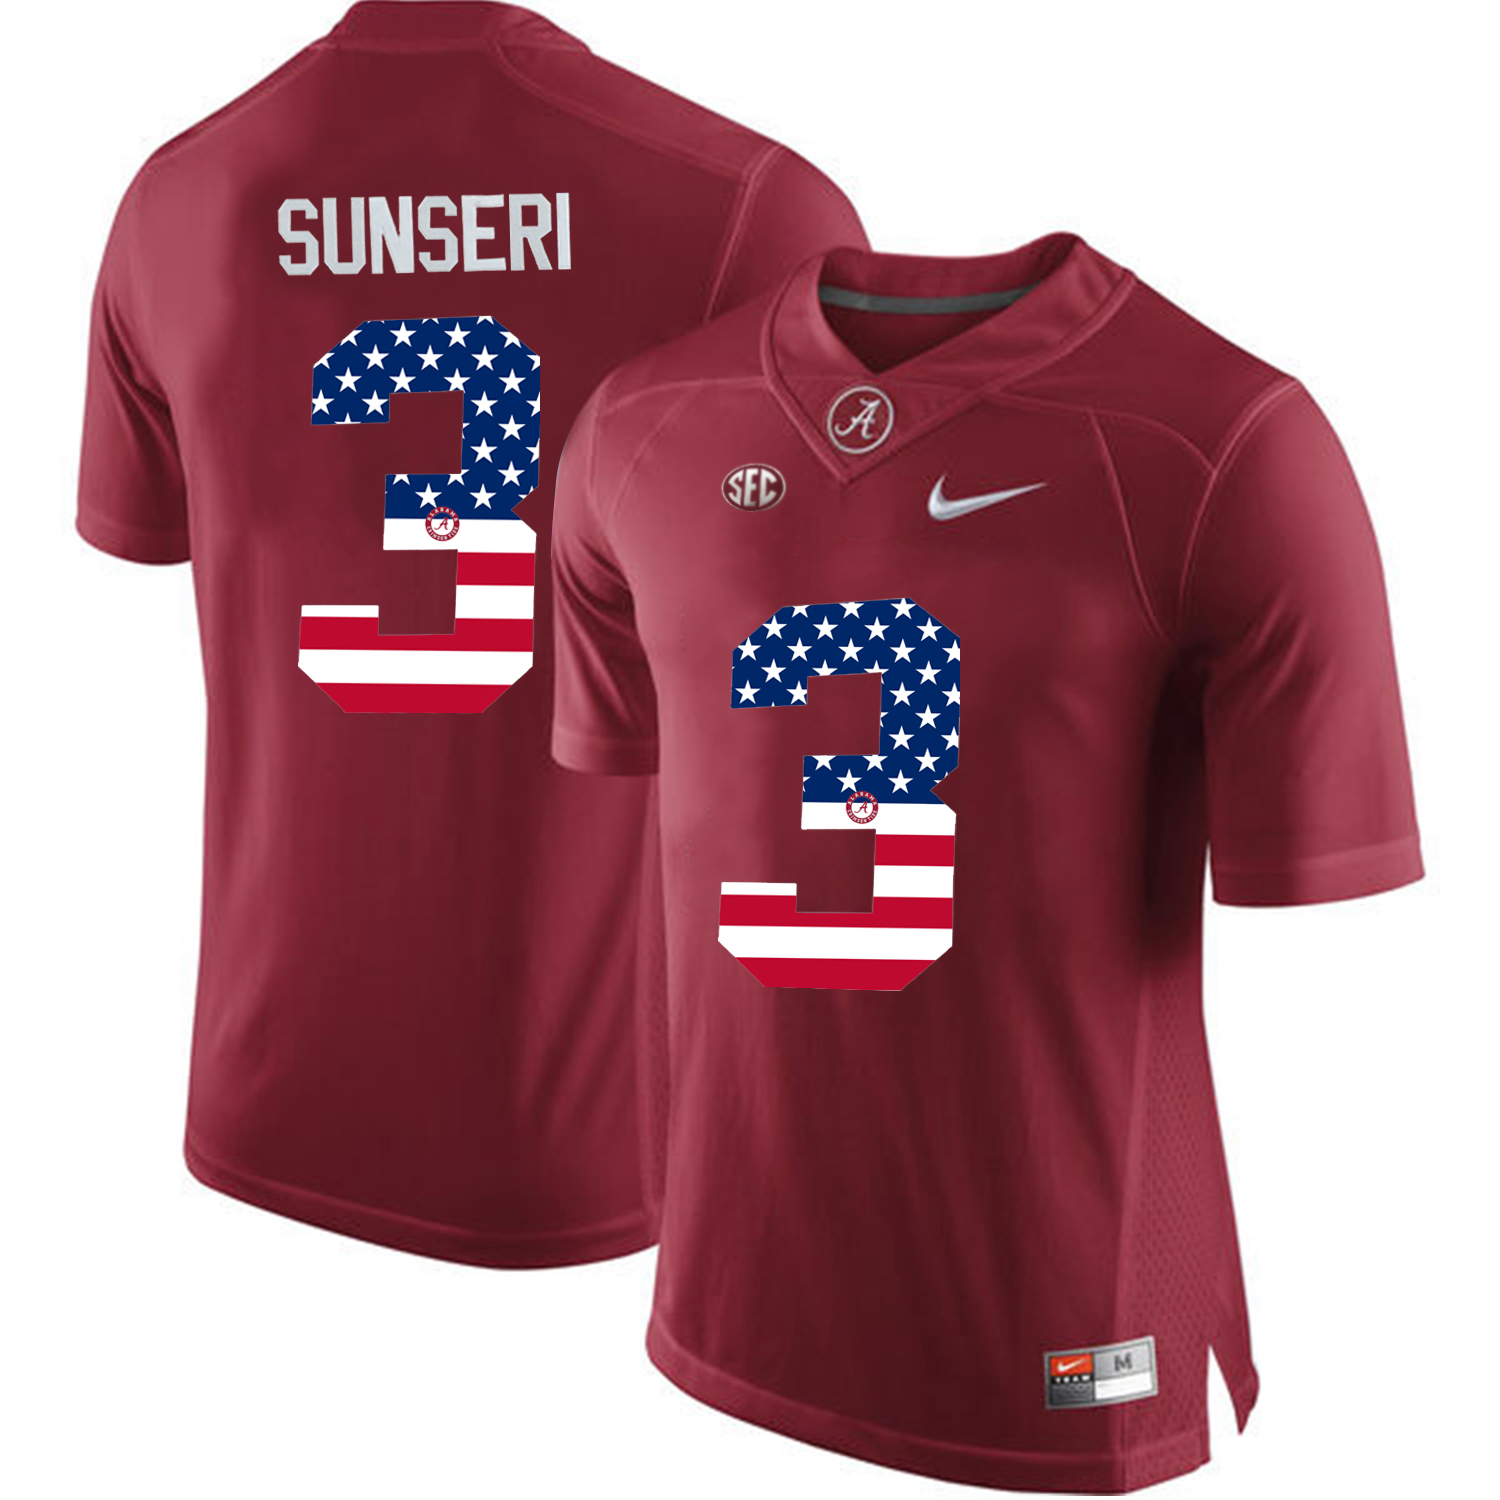 2016 US Flag Fashion Alabama Crimson Tide Vinnie Sunseri 3 College Football Limited Jerseys Crimson